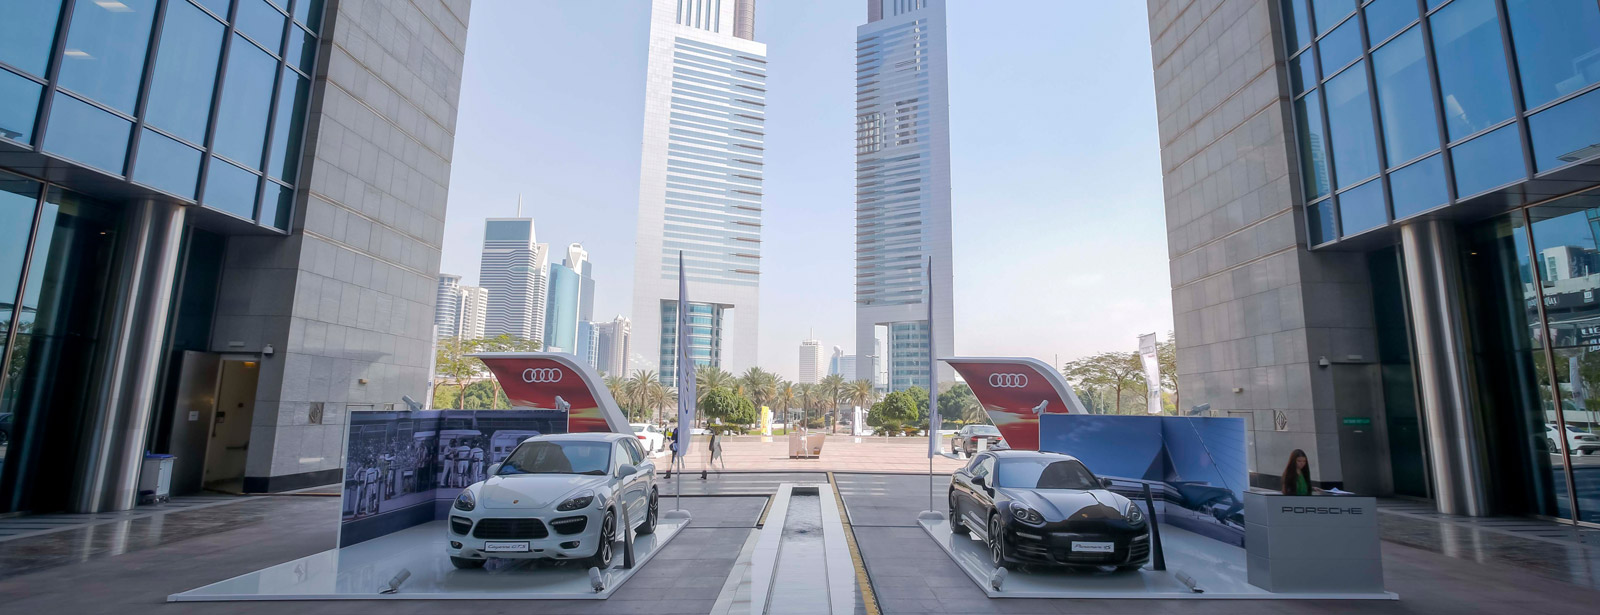 March 30th, 2014 | Brand new Porsche Macan S steals the show at Dubai's financial district.